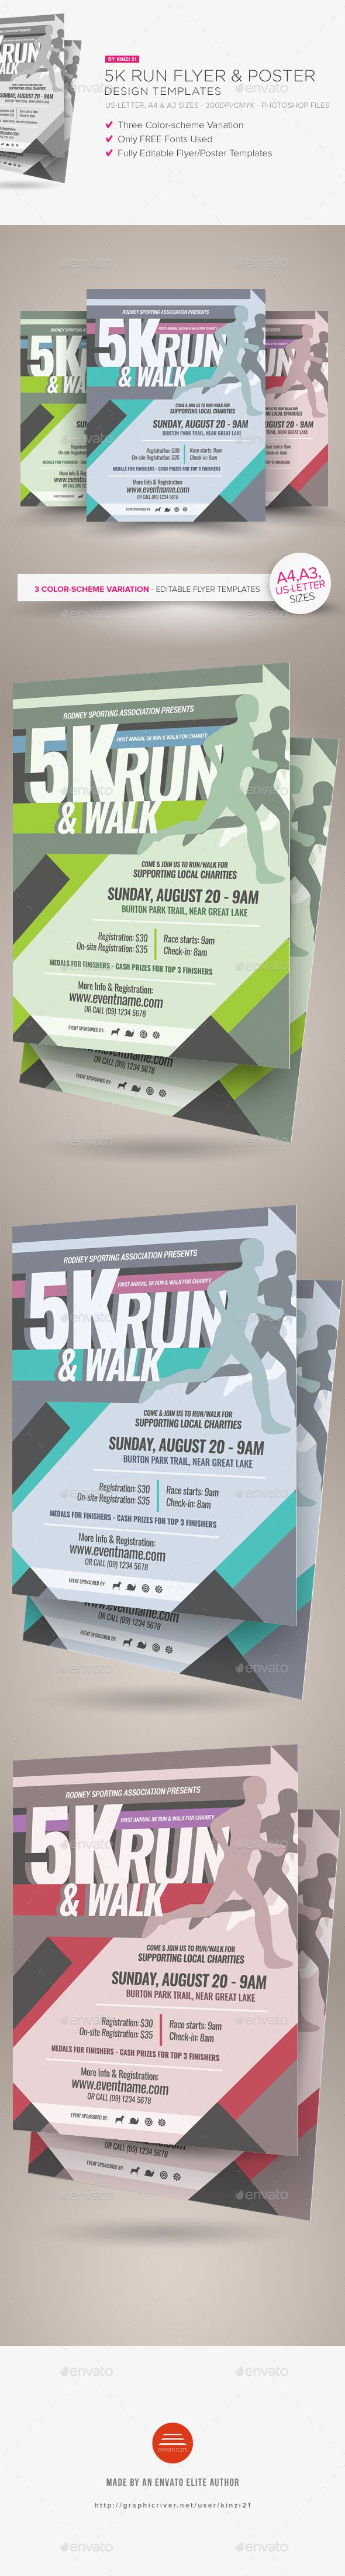 a flyer template pack perfect for promoting a 5k run or walk event